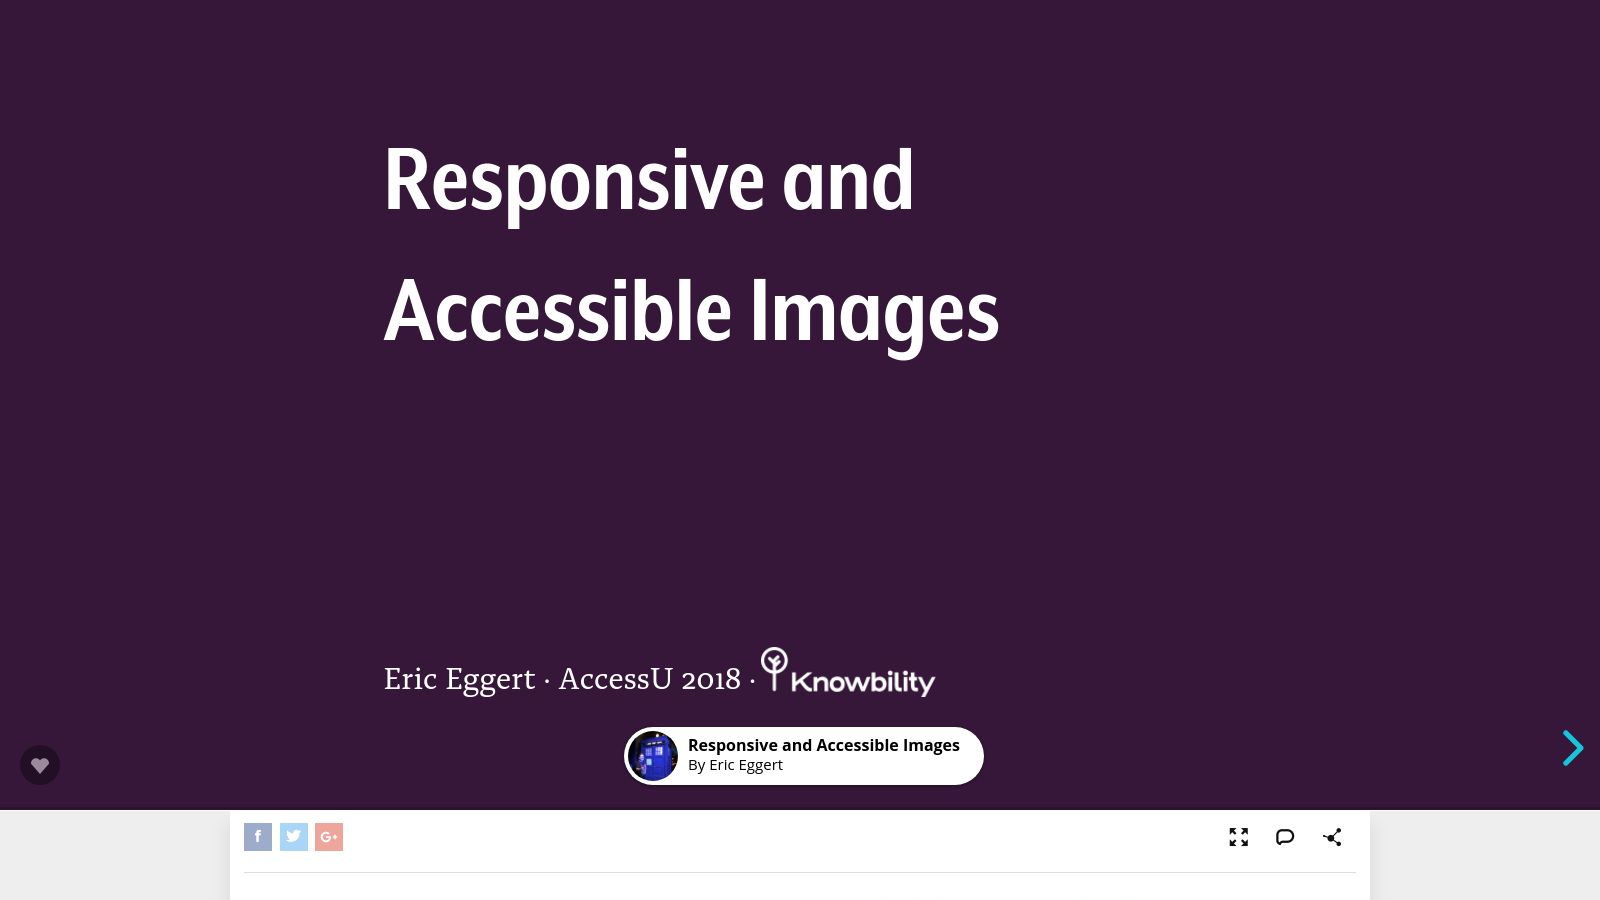 Responsive and Accessible Images